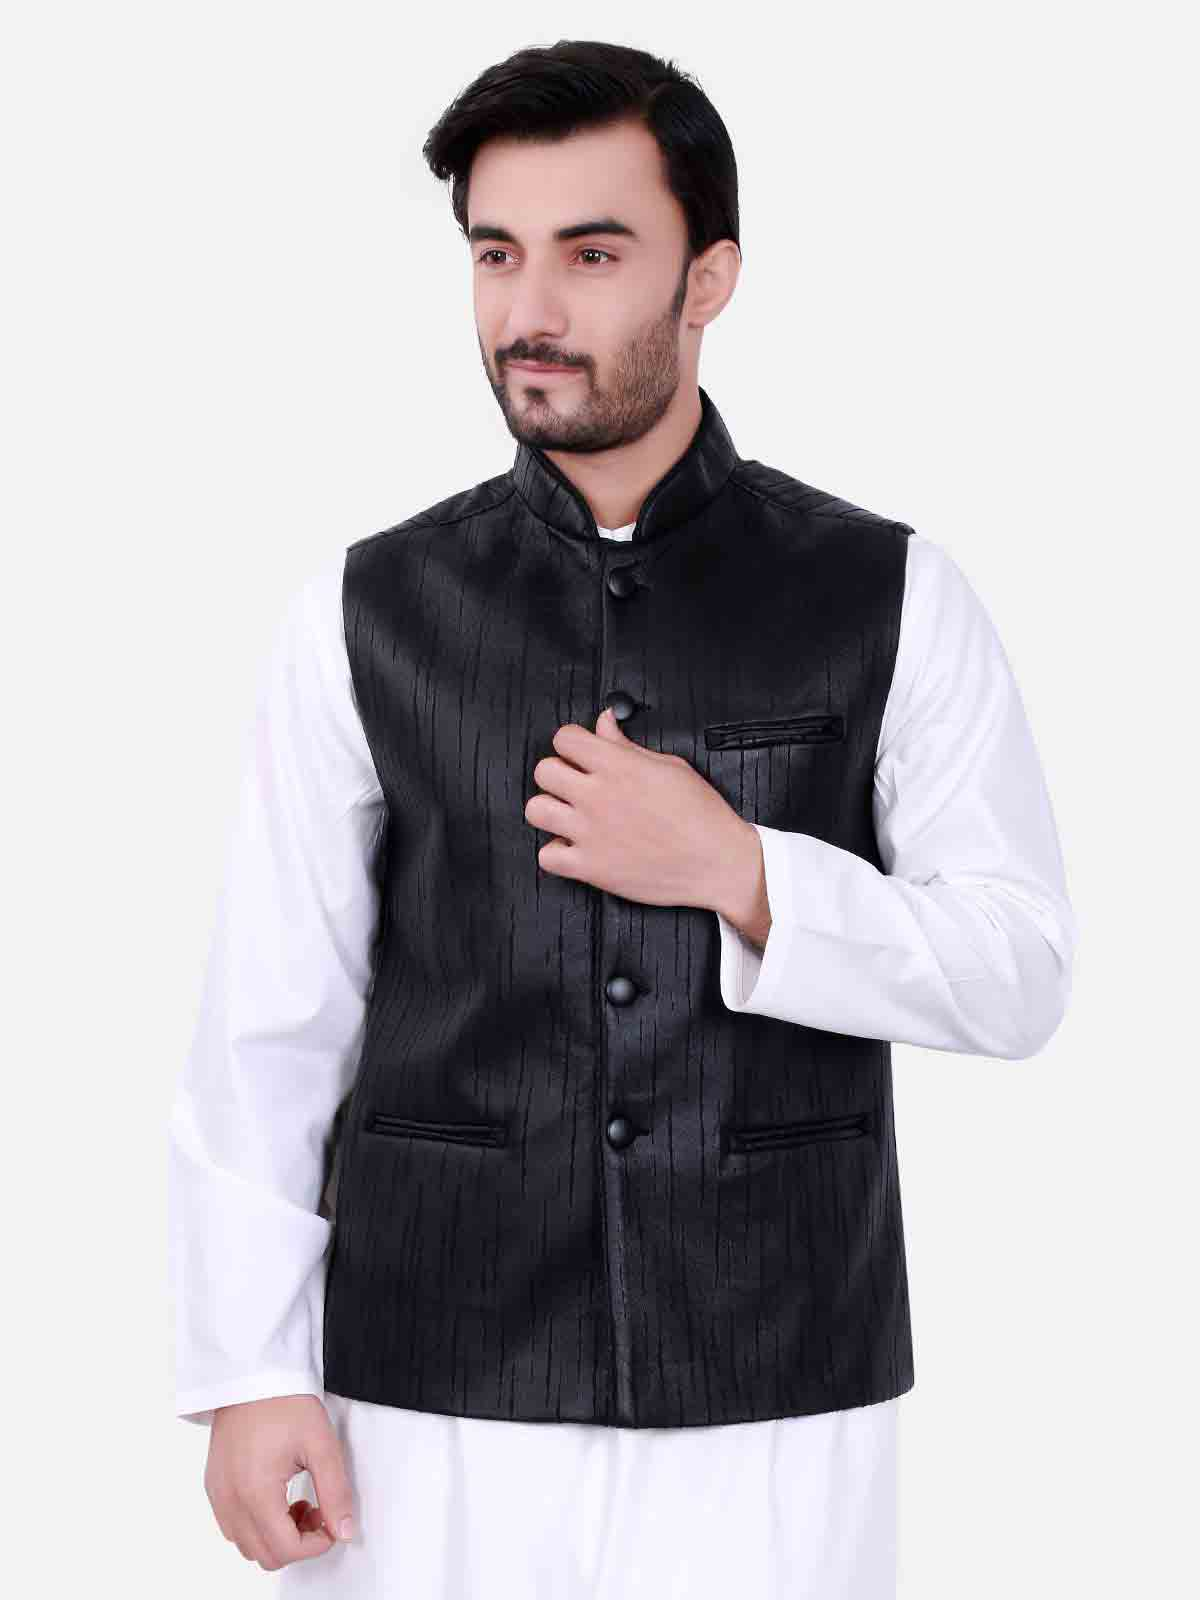 Black waistcoat designs 2017 with white kurta for boys in Pakistan